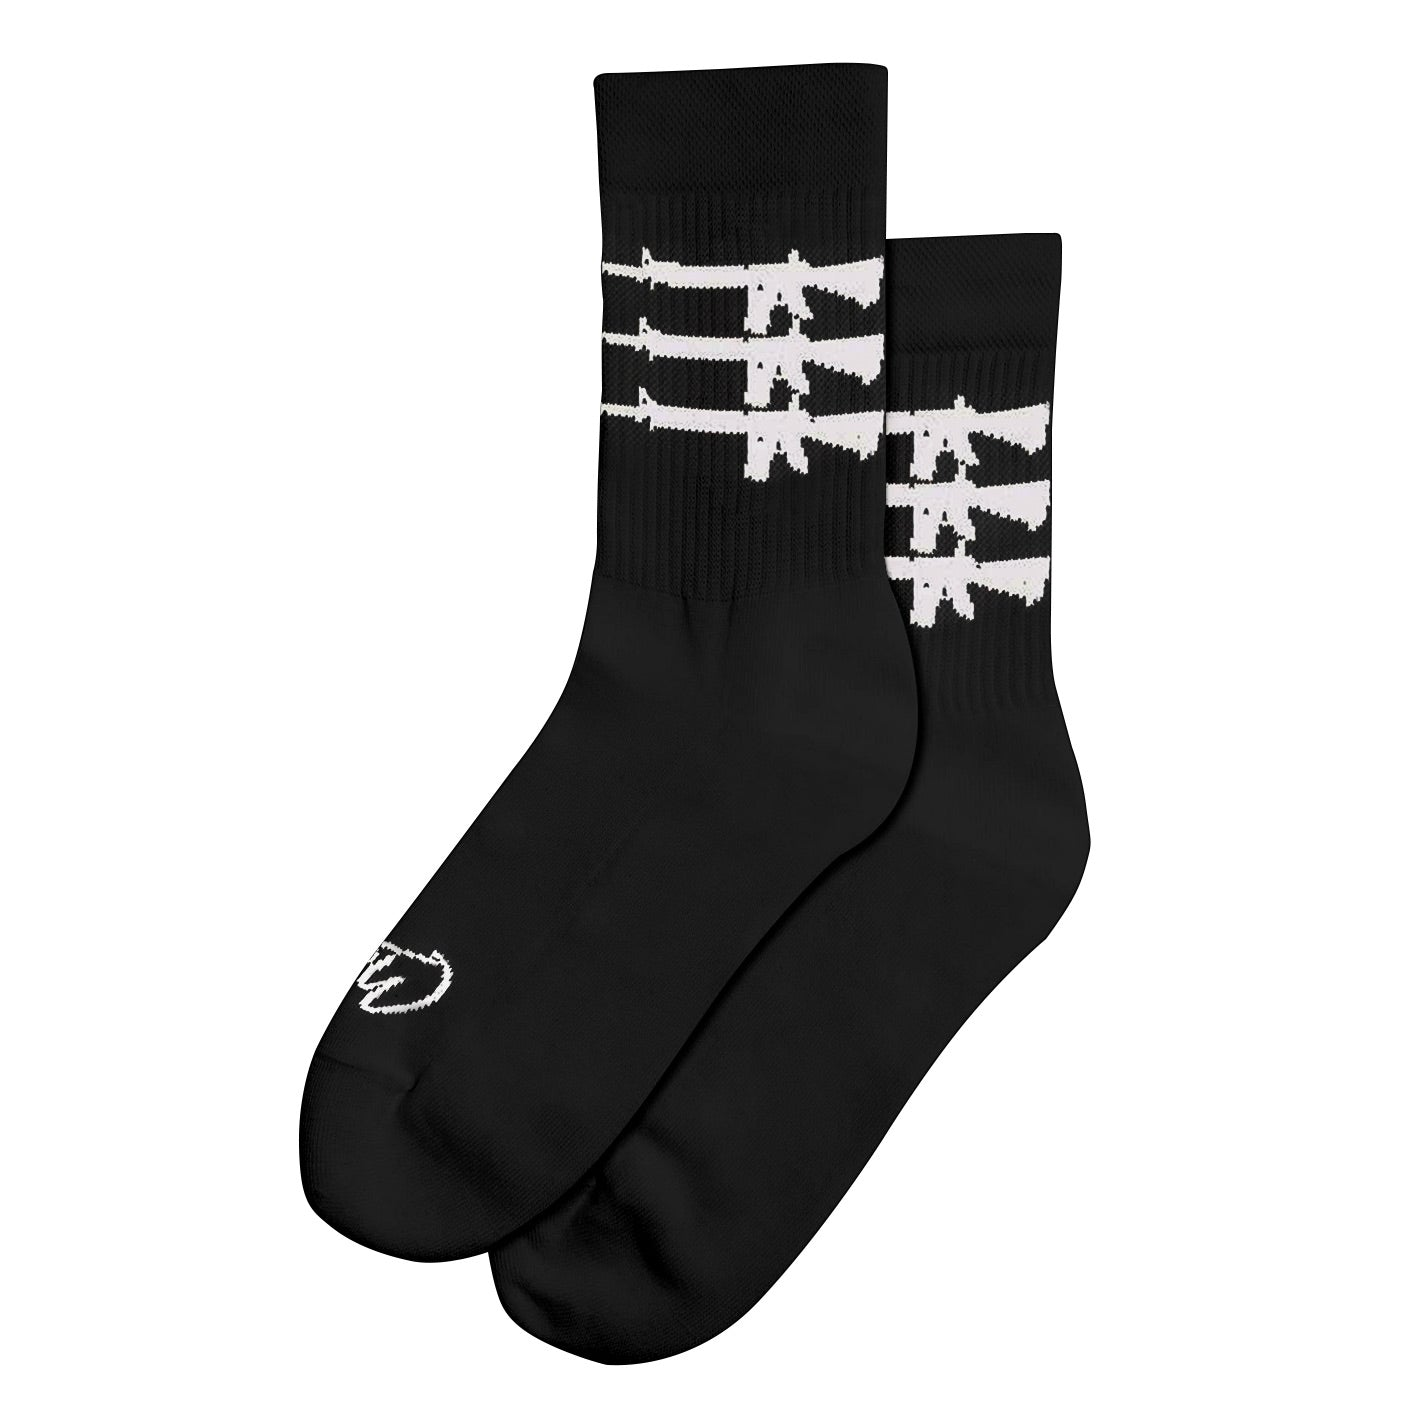 """Triplegun"" Socks - Black"